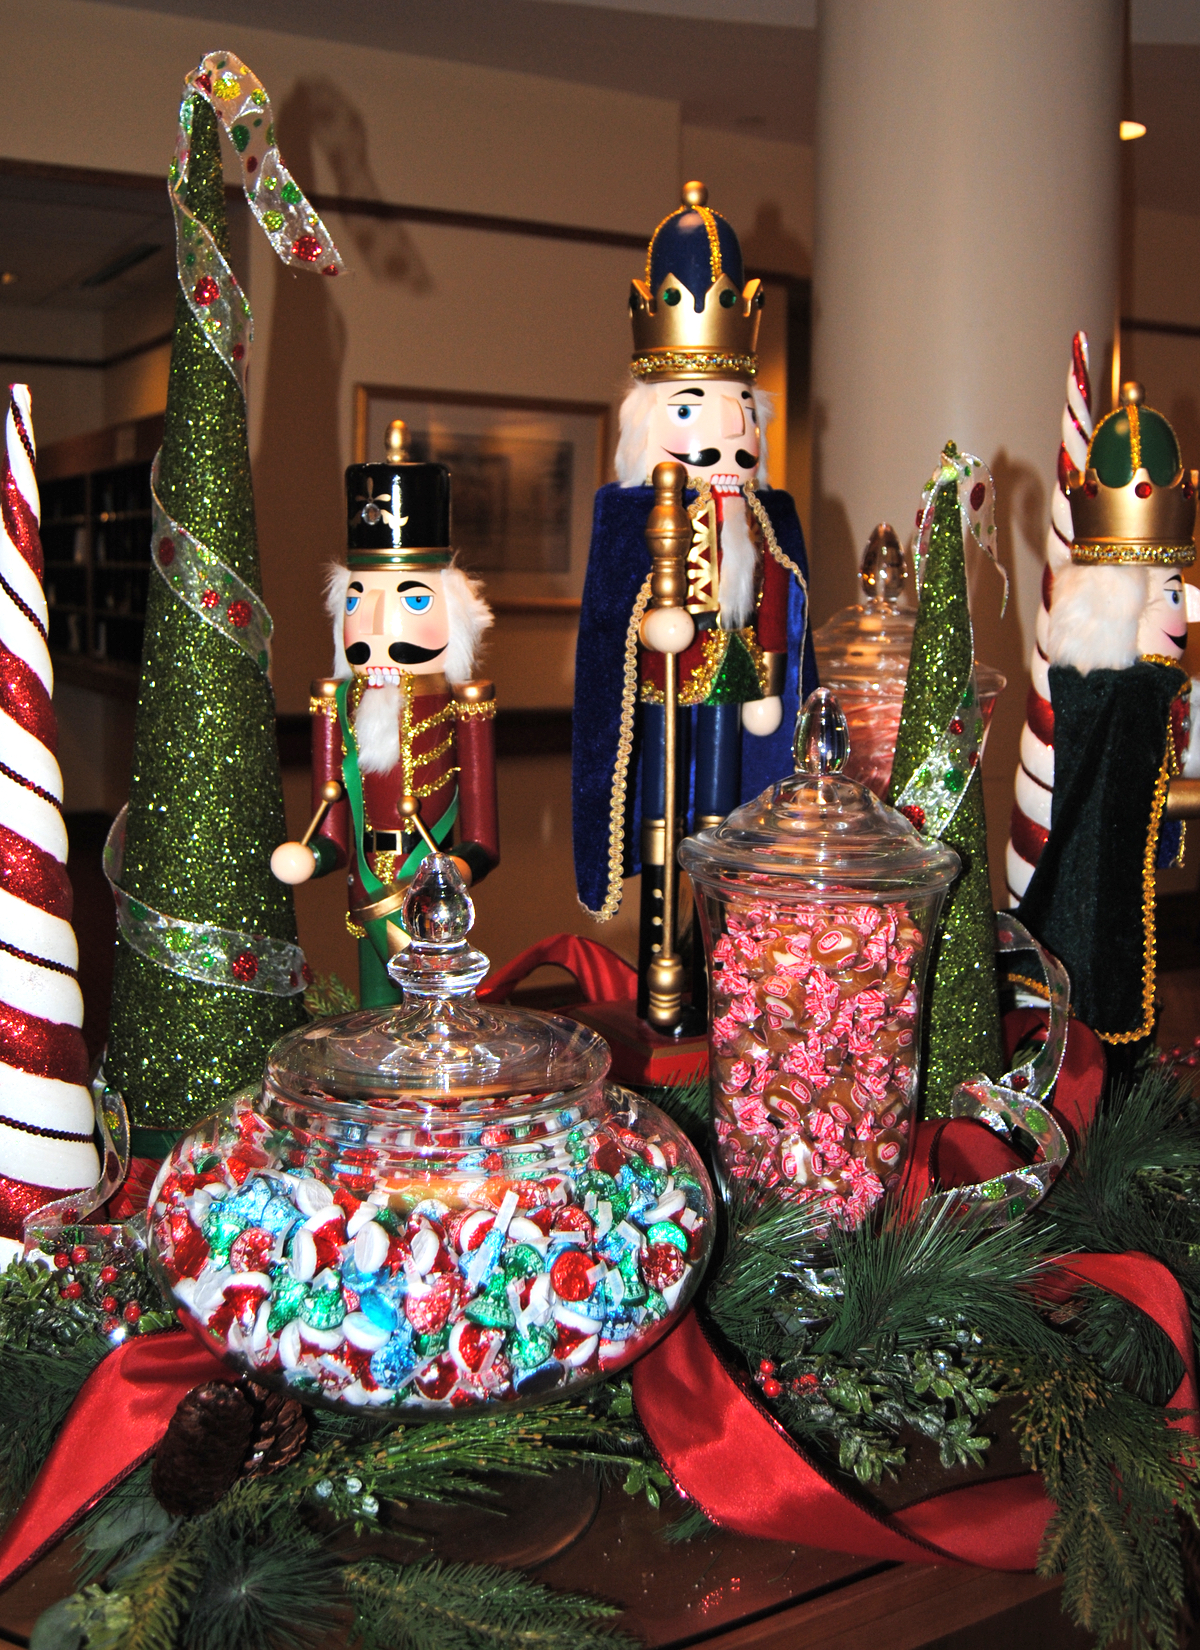 Nutcracker's 'Palace of Sweets' Entry Vignette